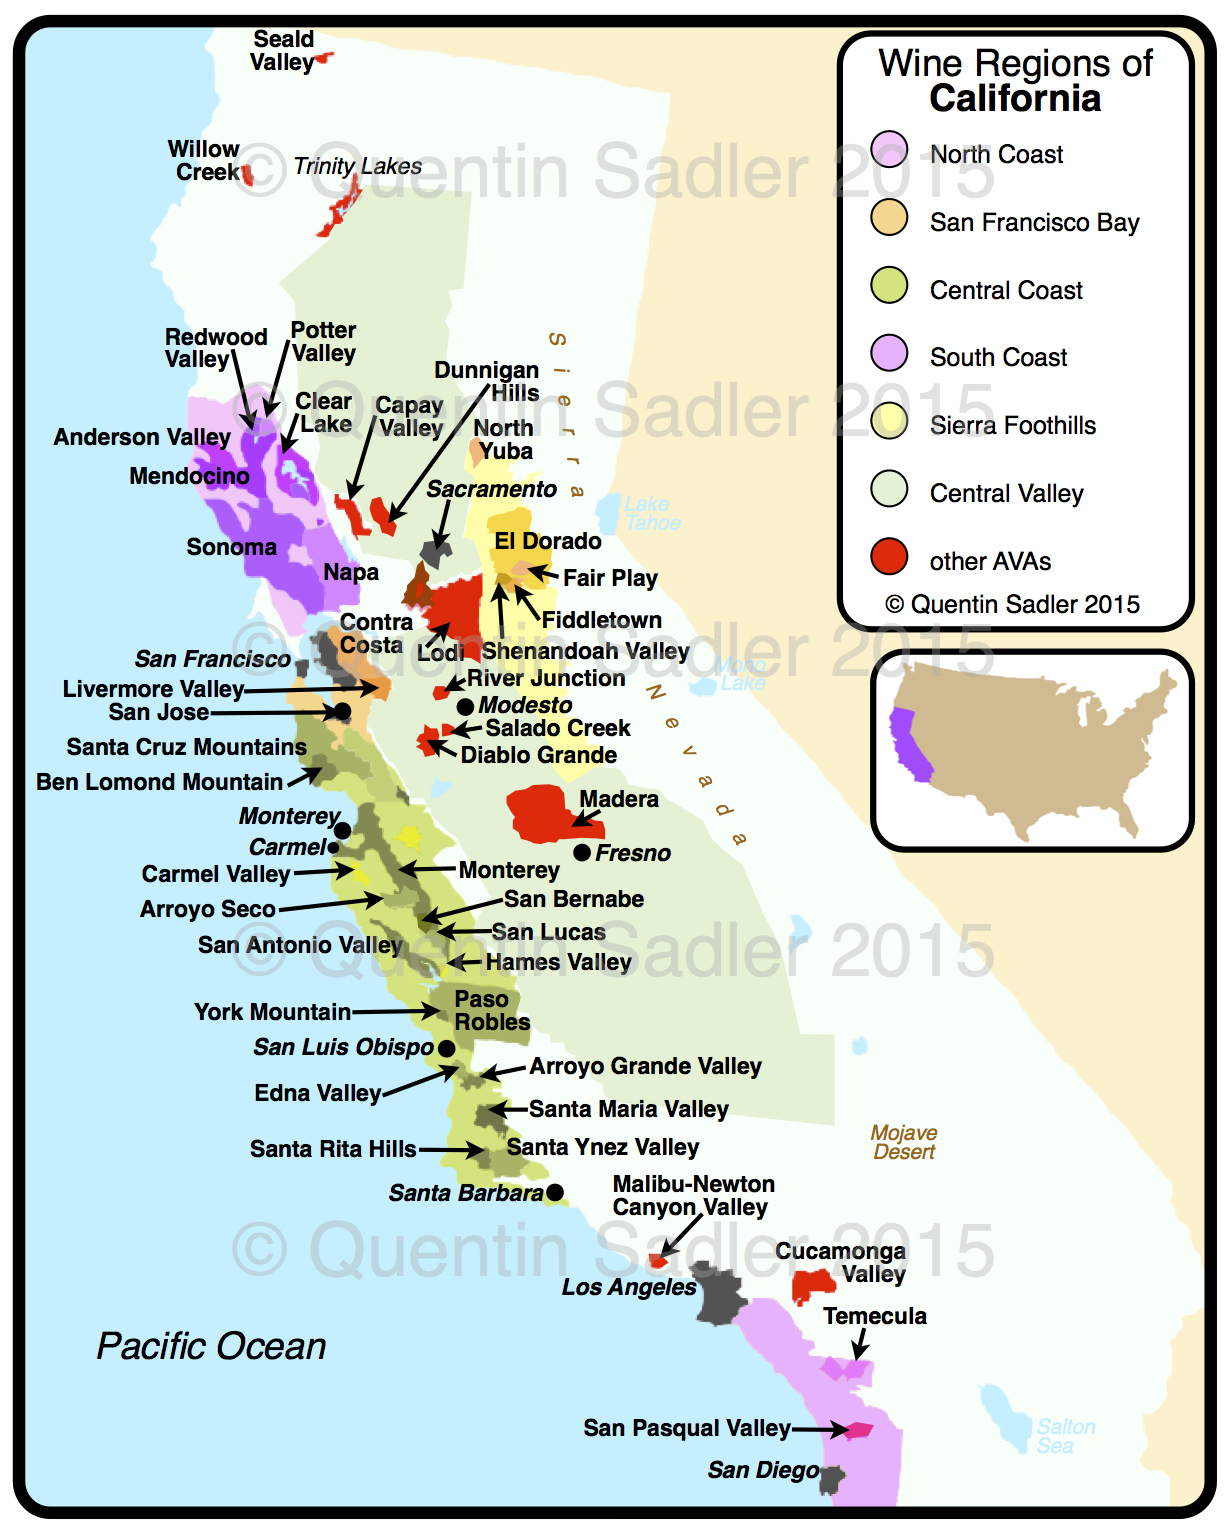 Map Of Northern California Wineries - Klipy - Map Of Northern California Wineries